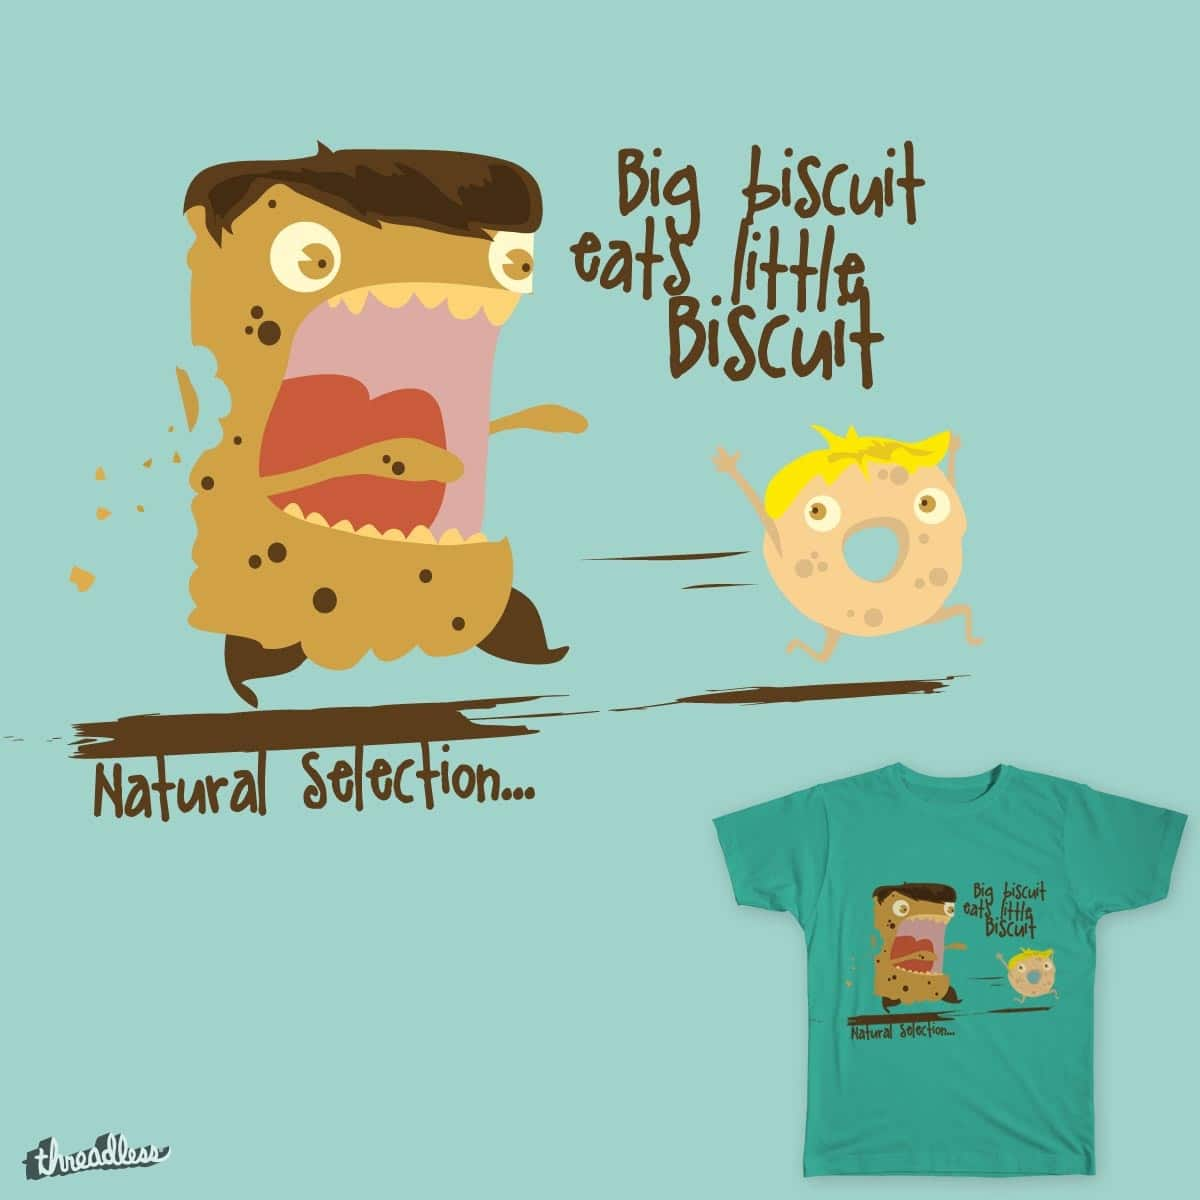 Natural Selection by Backs08 on Threadless